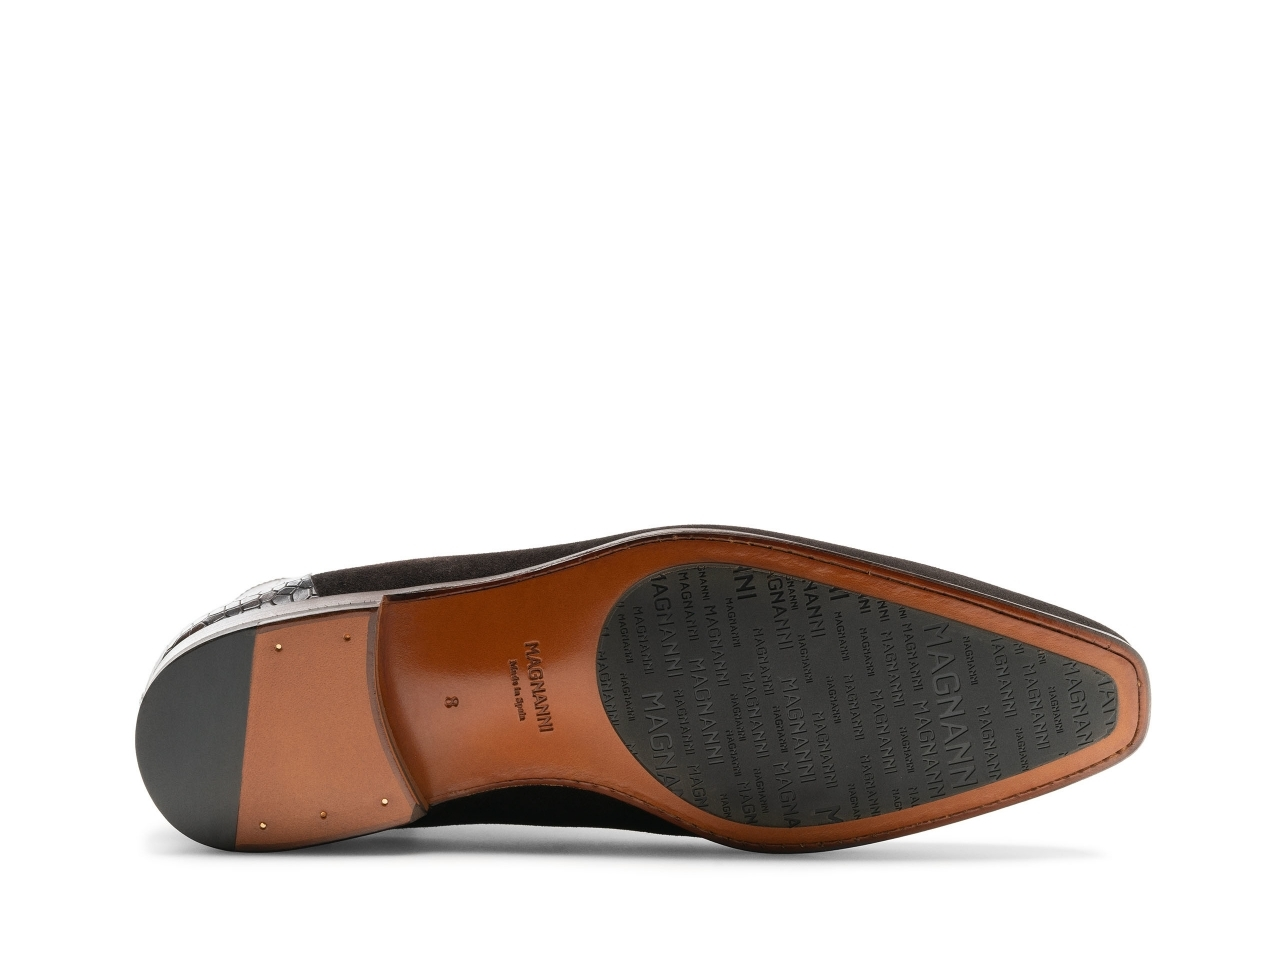 Sole of the Renley Brown Suede